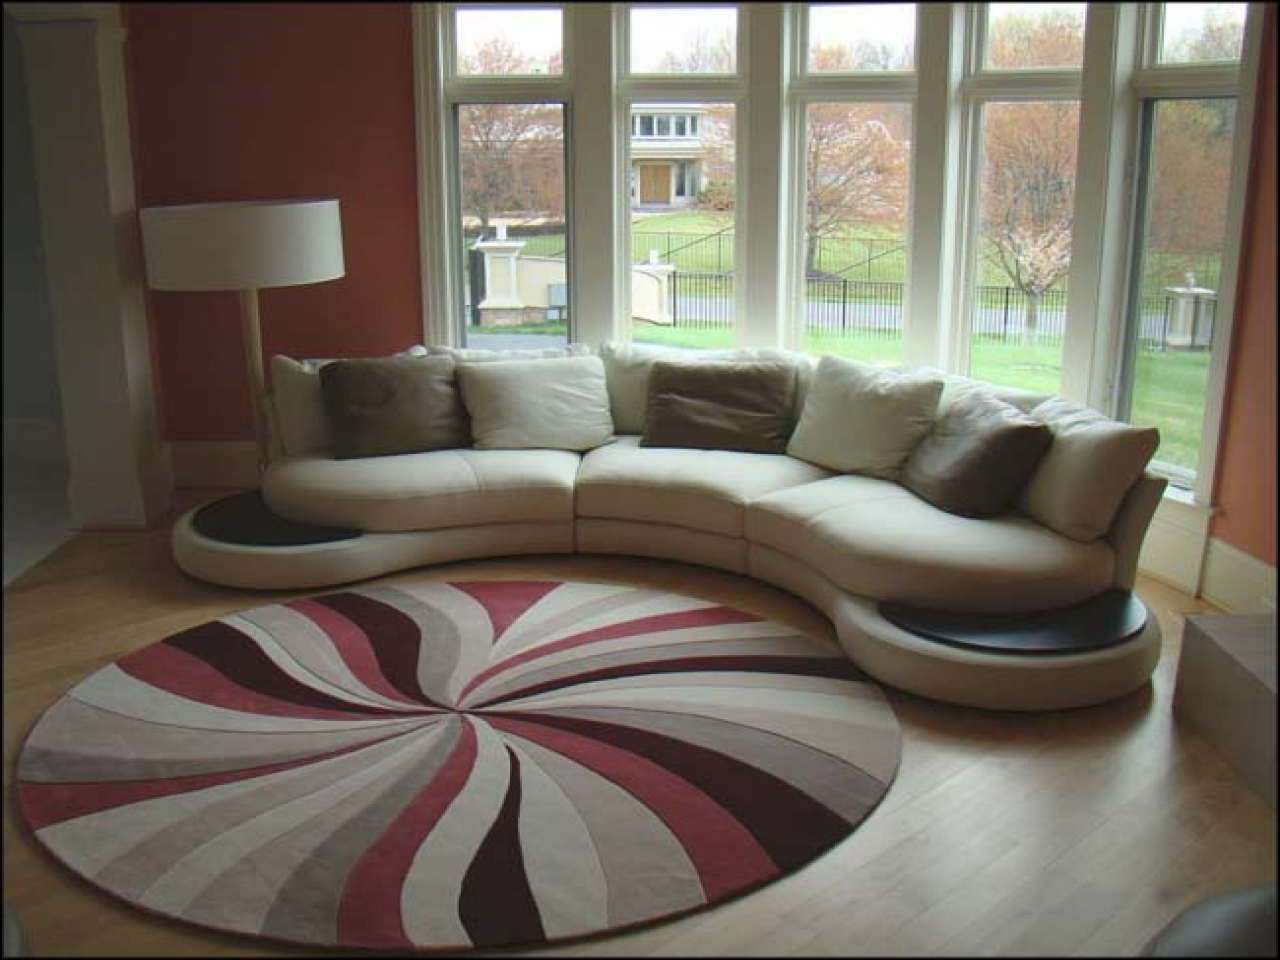 Rugs for cozy living room area rugs ideas roy home design - Colorful rugs for living room ...